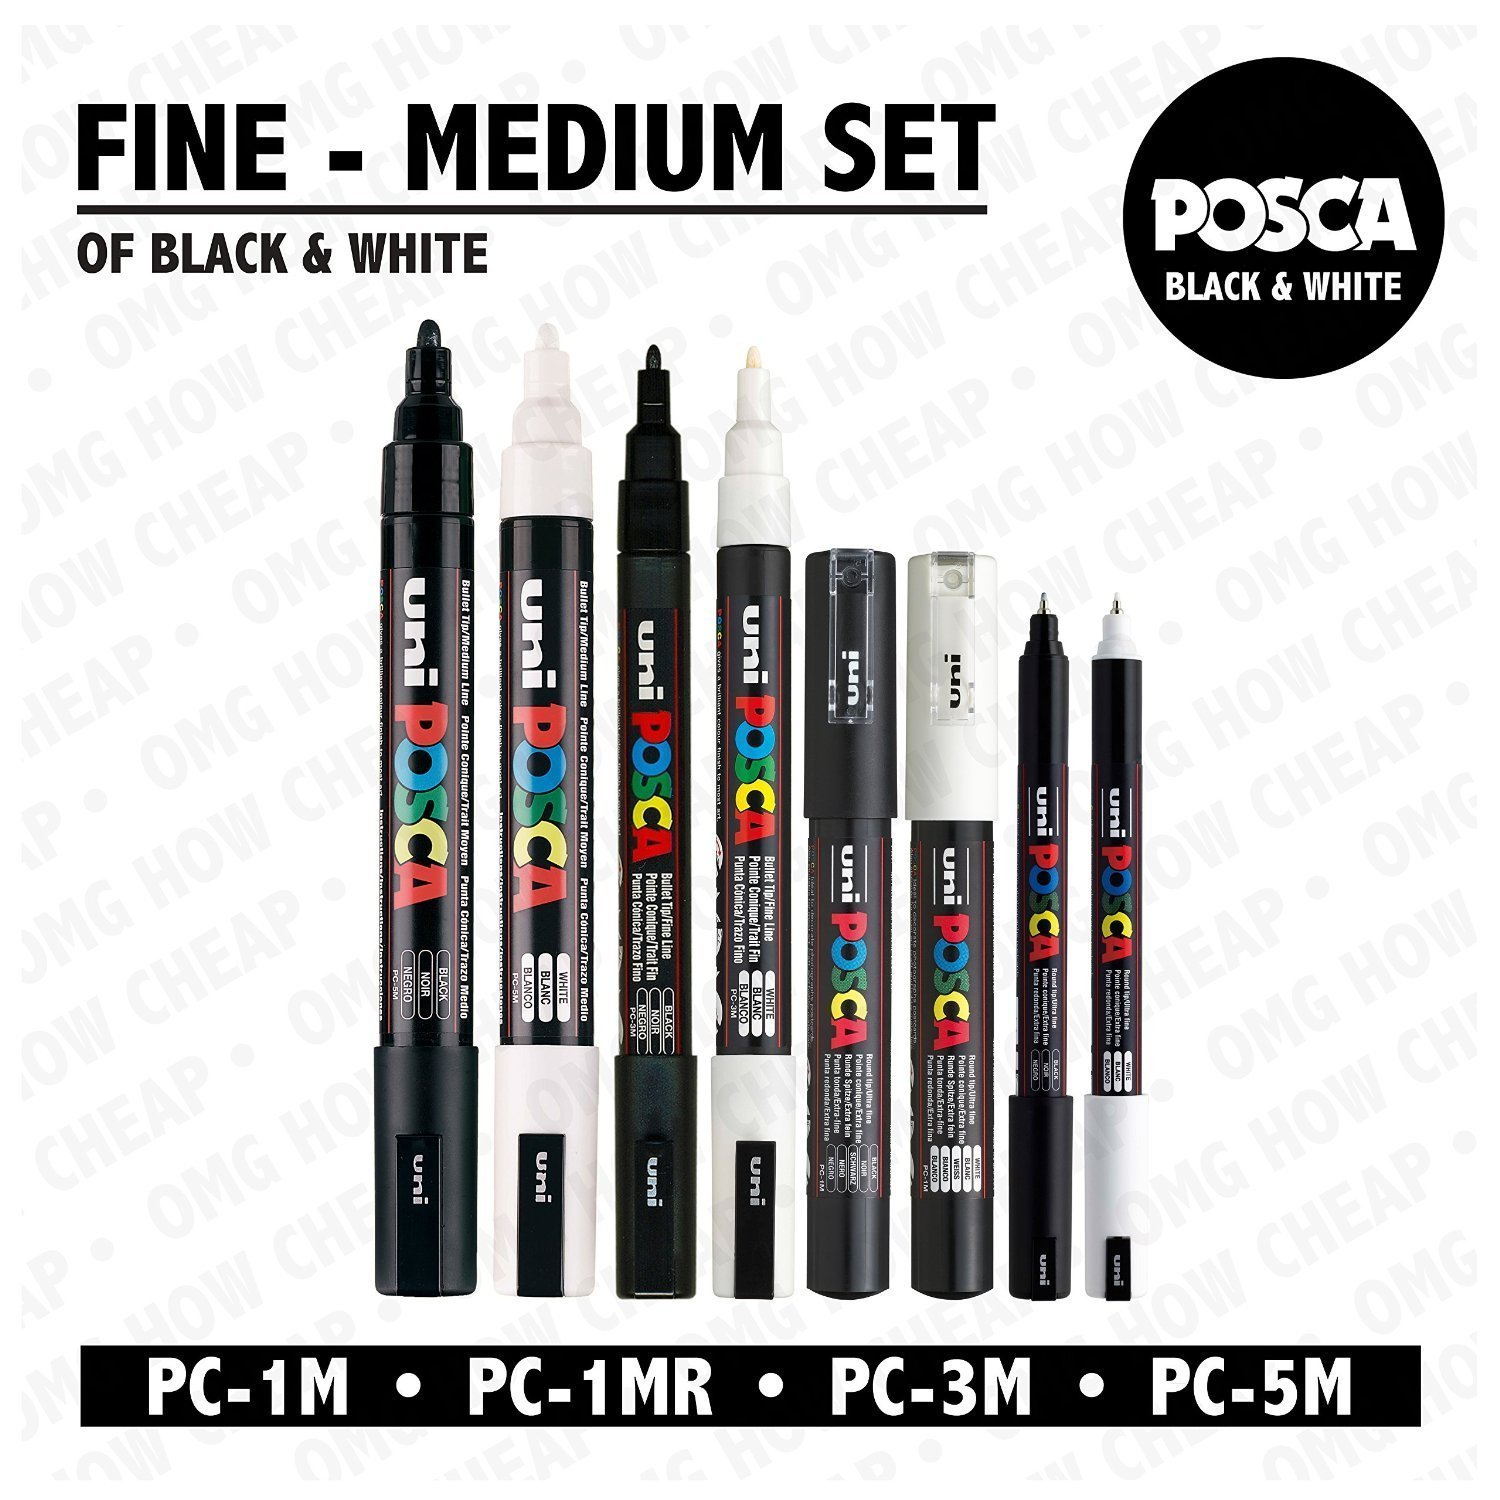 POSCA Black & White - Fine to Medium Set of 8 Pens (PC-5M, PC-3M, PC-1M, PC-1MR) Uni-Ball 4336954294